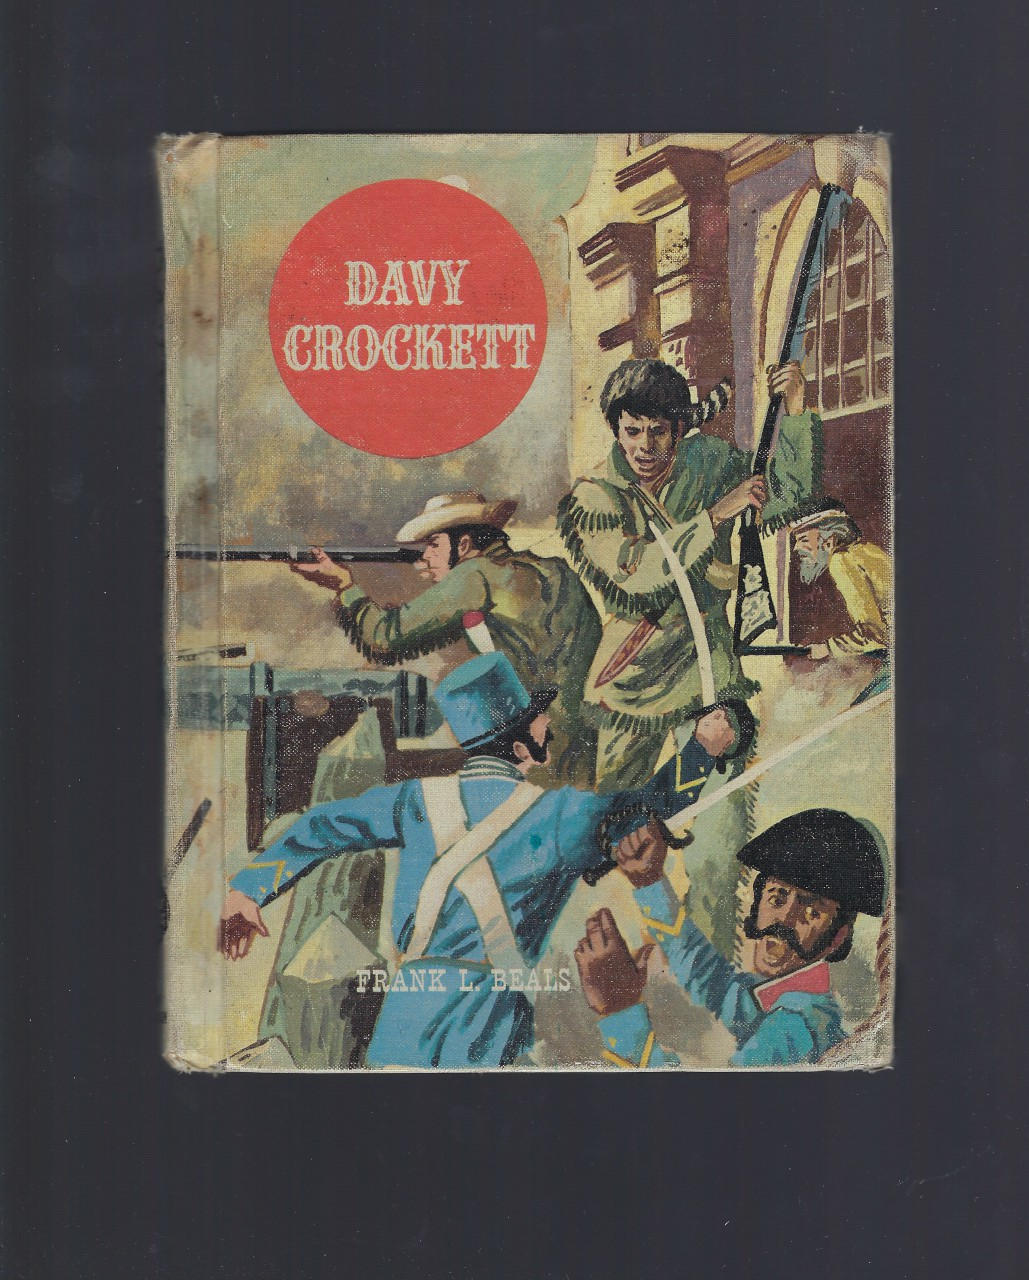 Davy Crockett American Adventure Series 1960, Frank Lee Beals; Jack Merryweather [Illustrator]